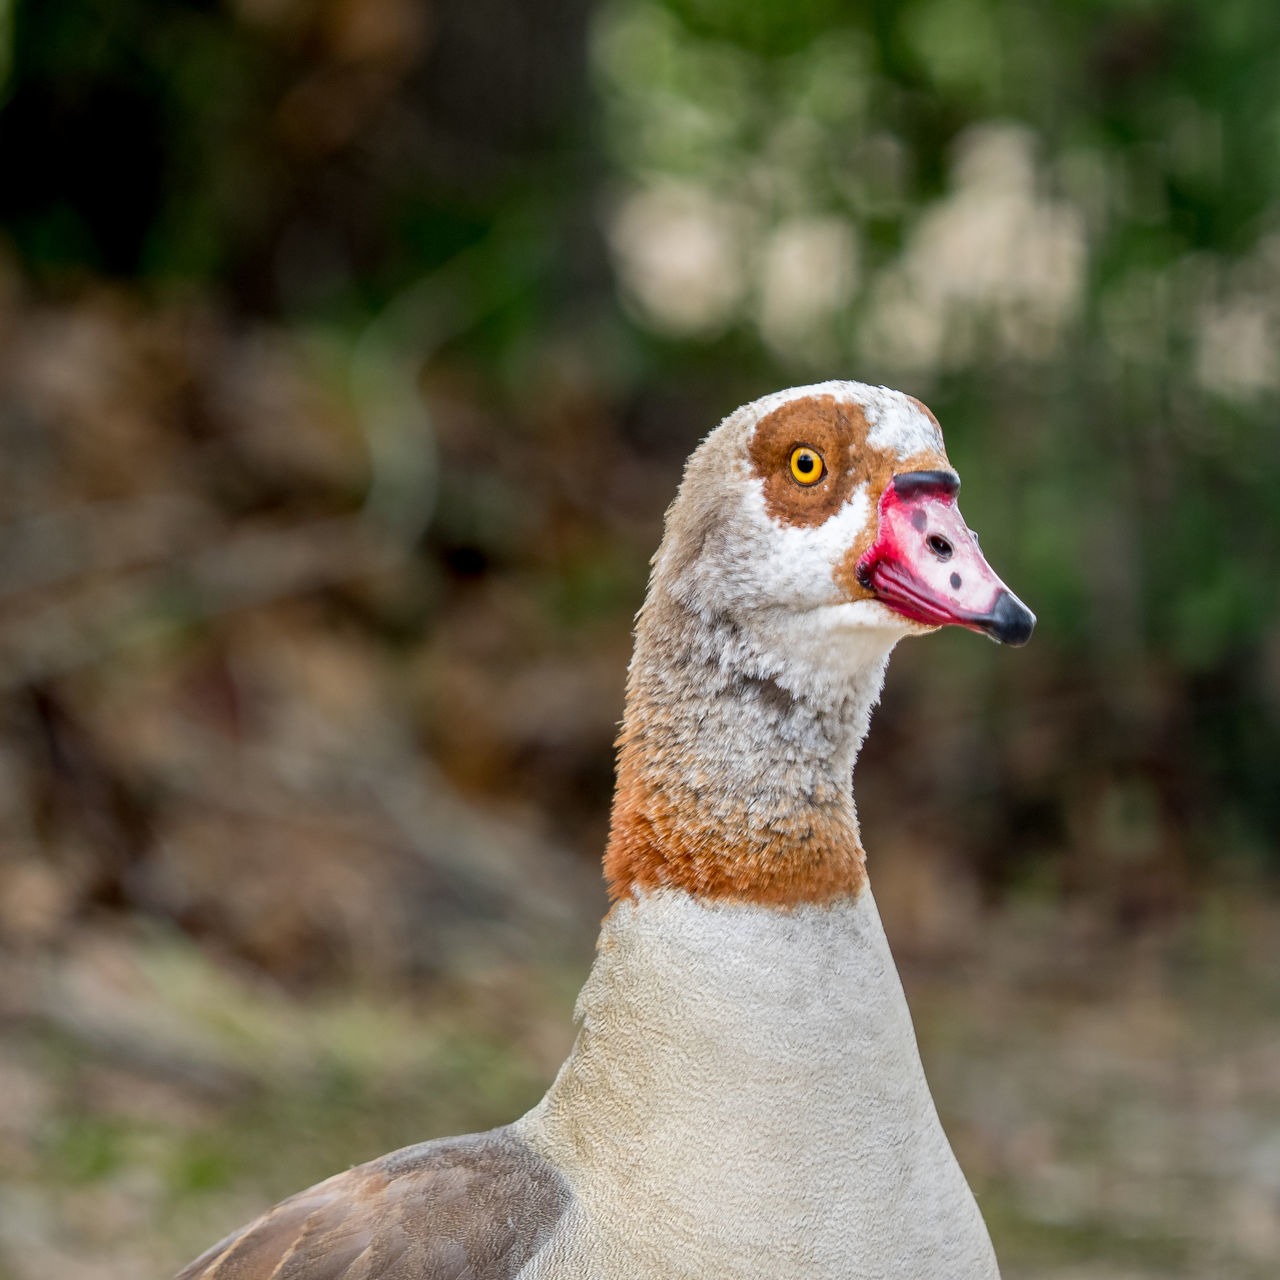 Egyptian Goose 1 Animal Themes Animal Wildlife Animals In The Wild Bird Close-up Day Egyptian Goose No People One Animal Outdoors